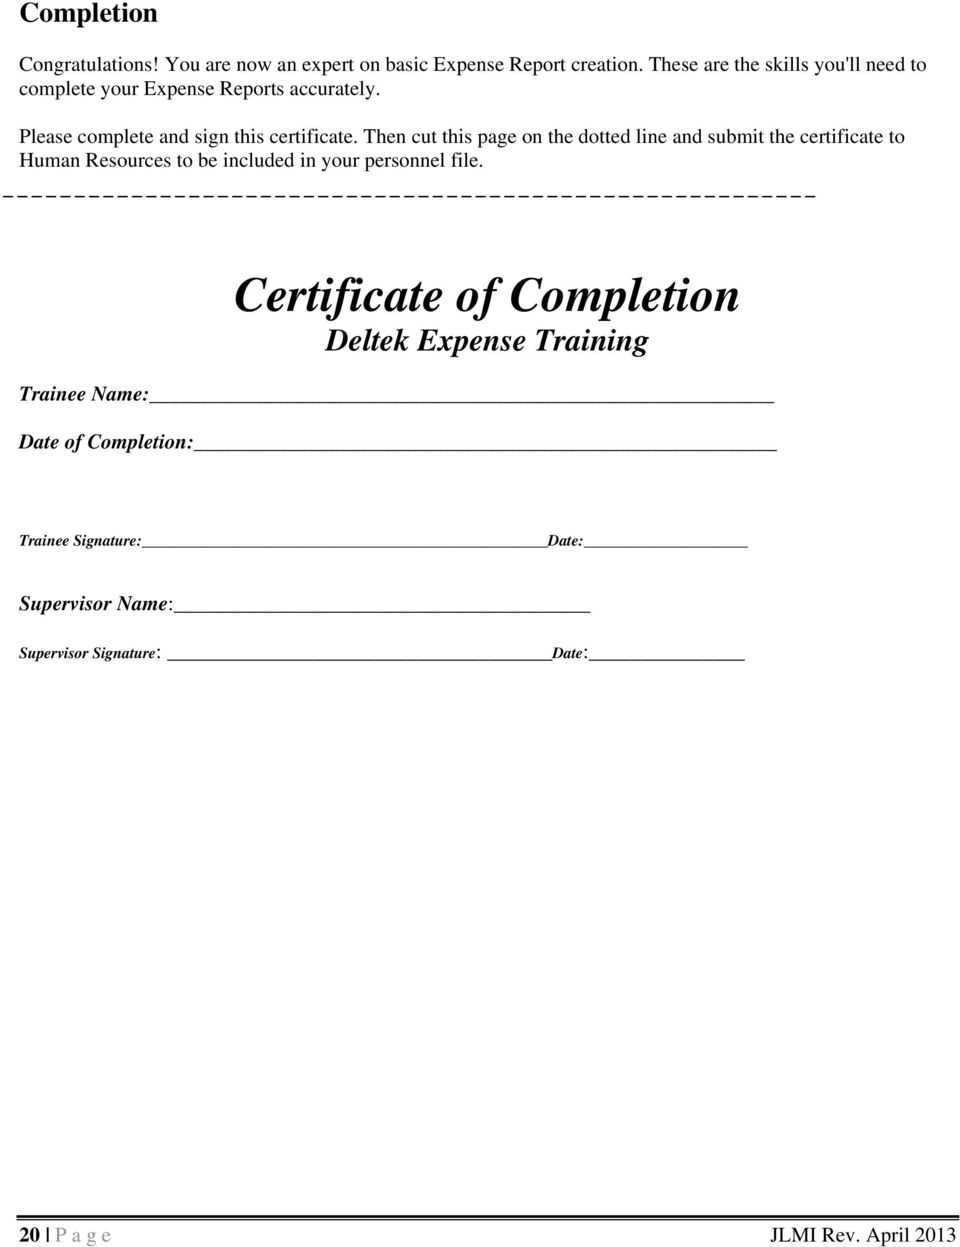 Then cut this page on the dotted line and submit the certificate to Human Resources to be included in your personnel file.